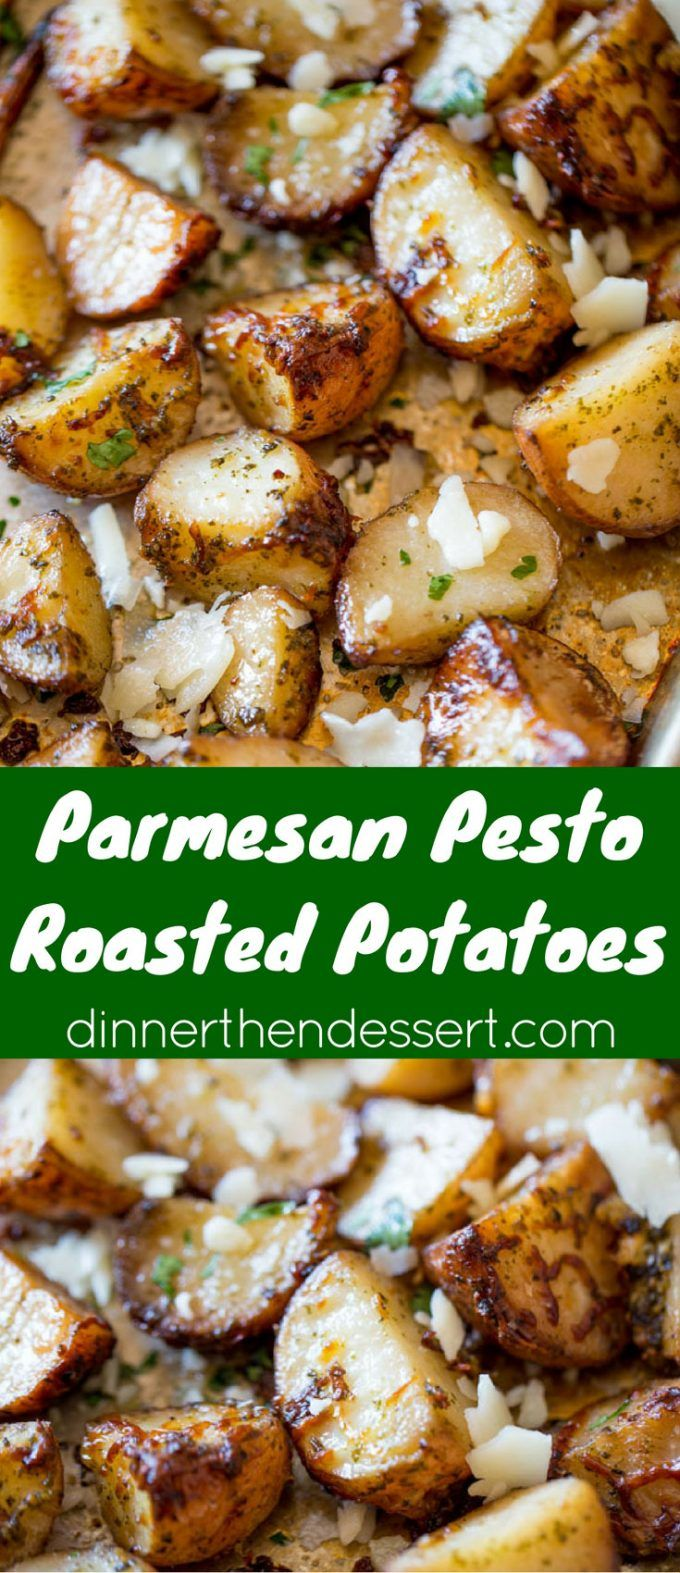 Parmesan Pesto Roasted Potatoes are ready for roasting in minutes with red potatoes, basil pesto, olive oil and Parmesan Cheese. dinnerthendessert.com